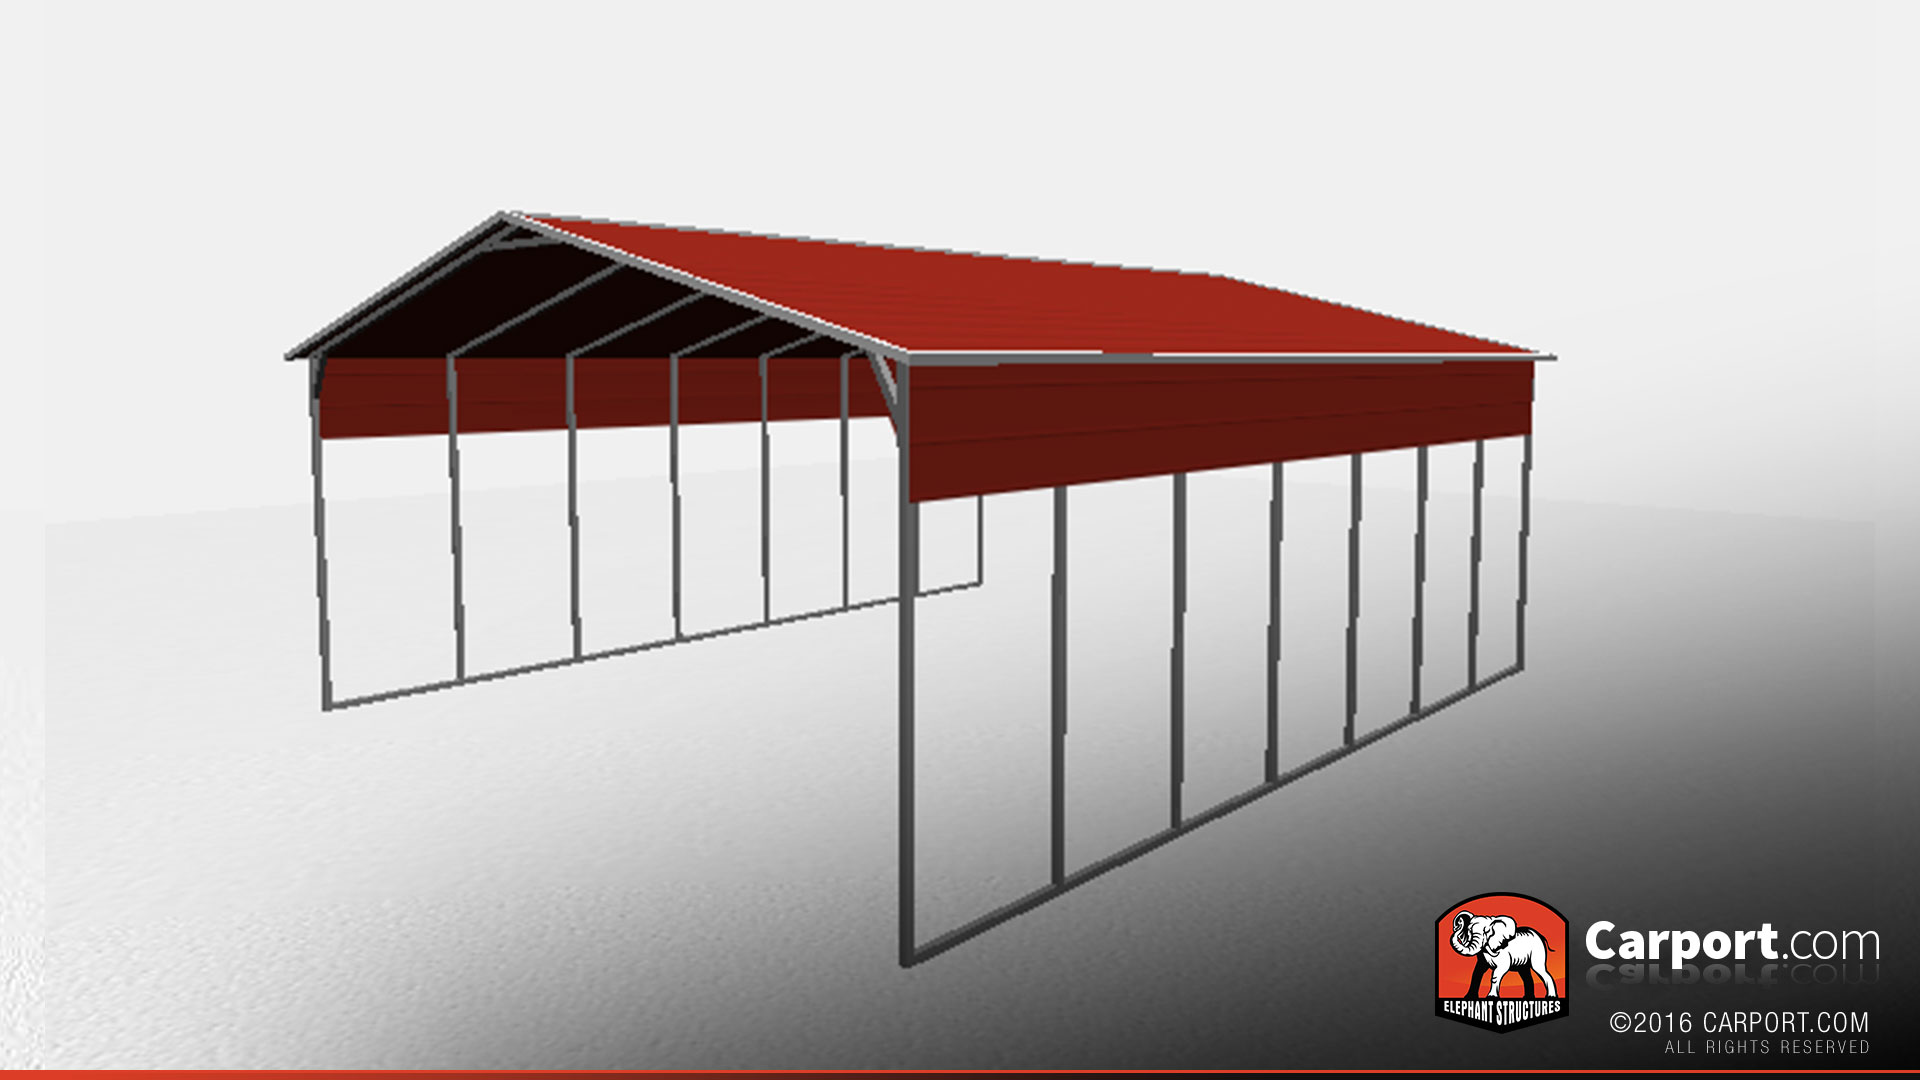 26 39 X 36 39 Open Steel Carport With A Frame Roof Steel